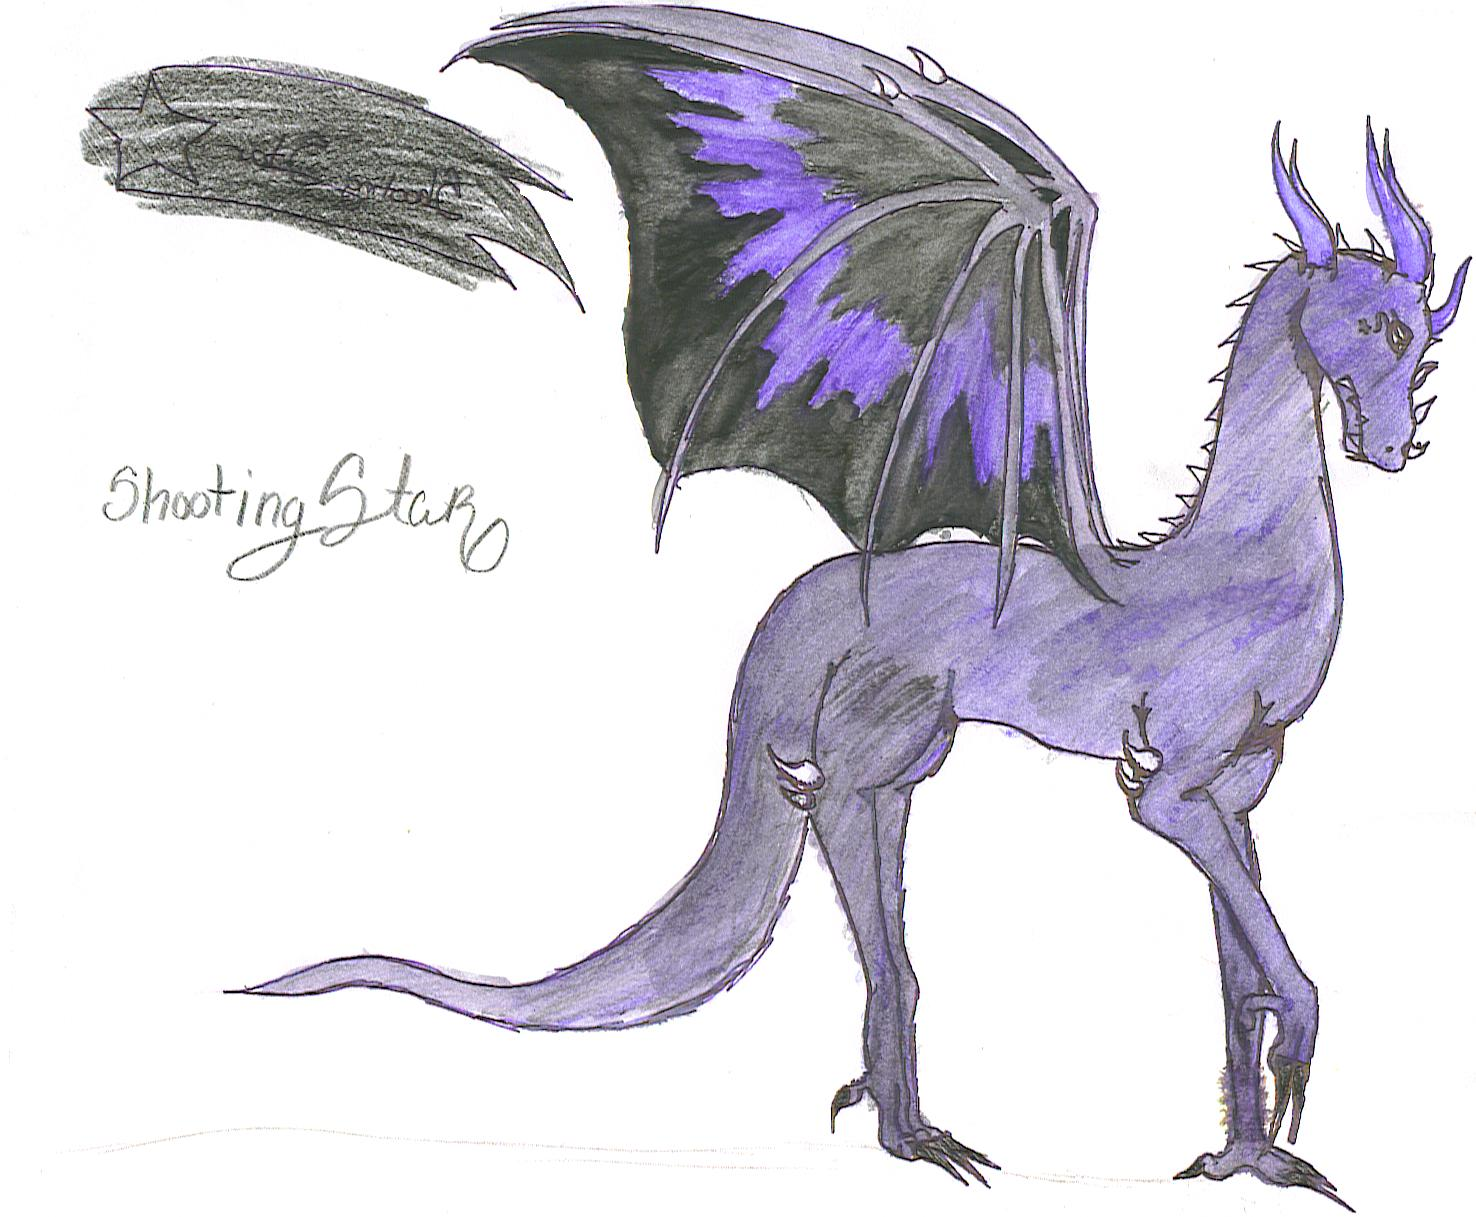 Shooting Star- - My watercolored paper dragon by Dark_Dragon_Dreamer